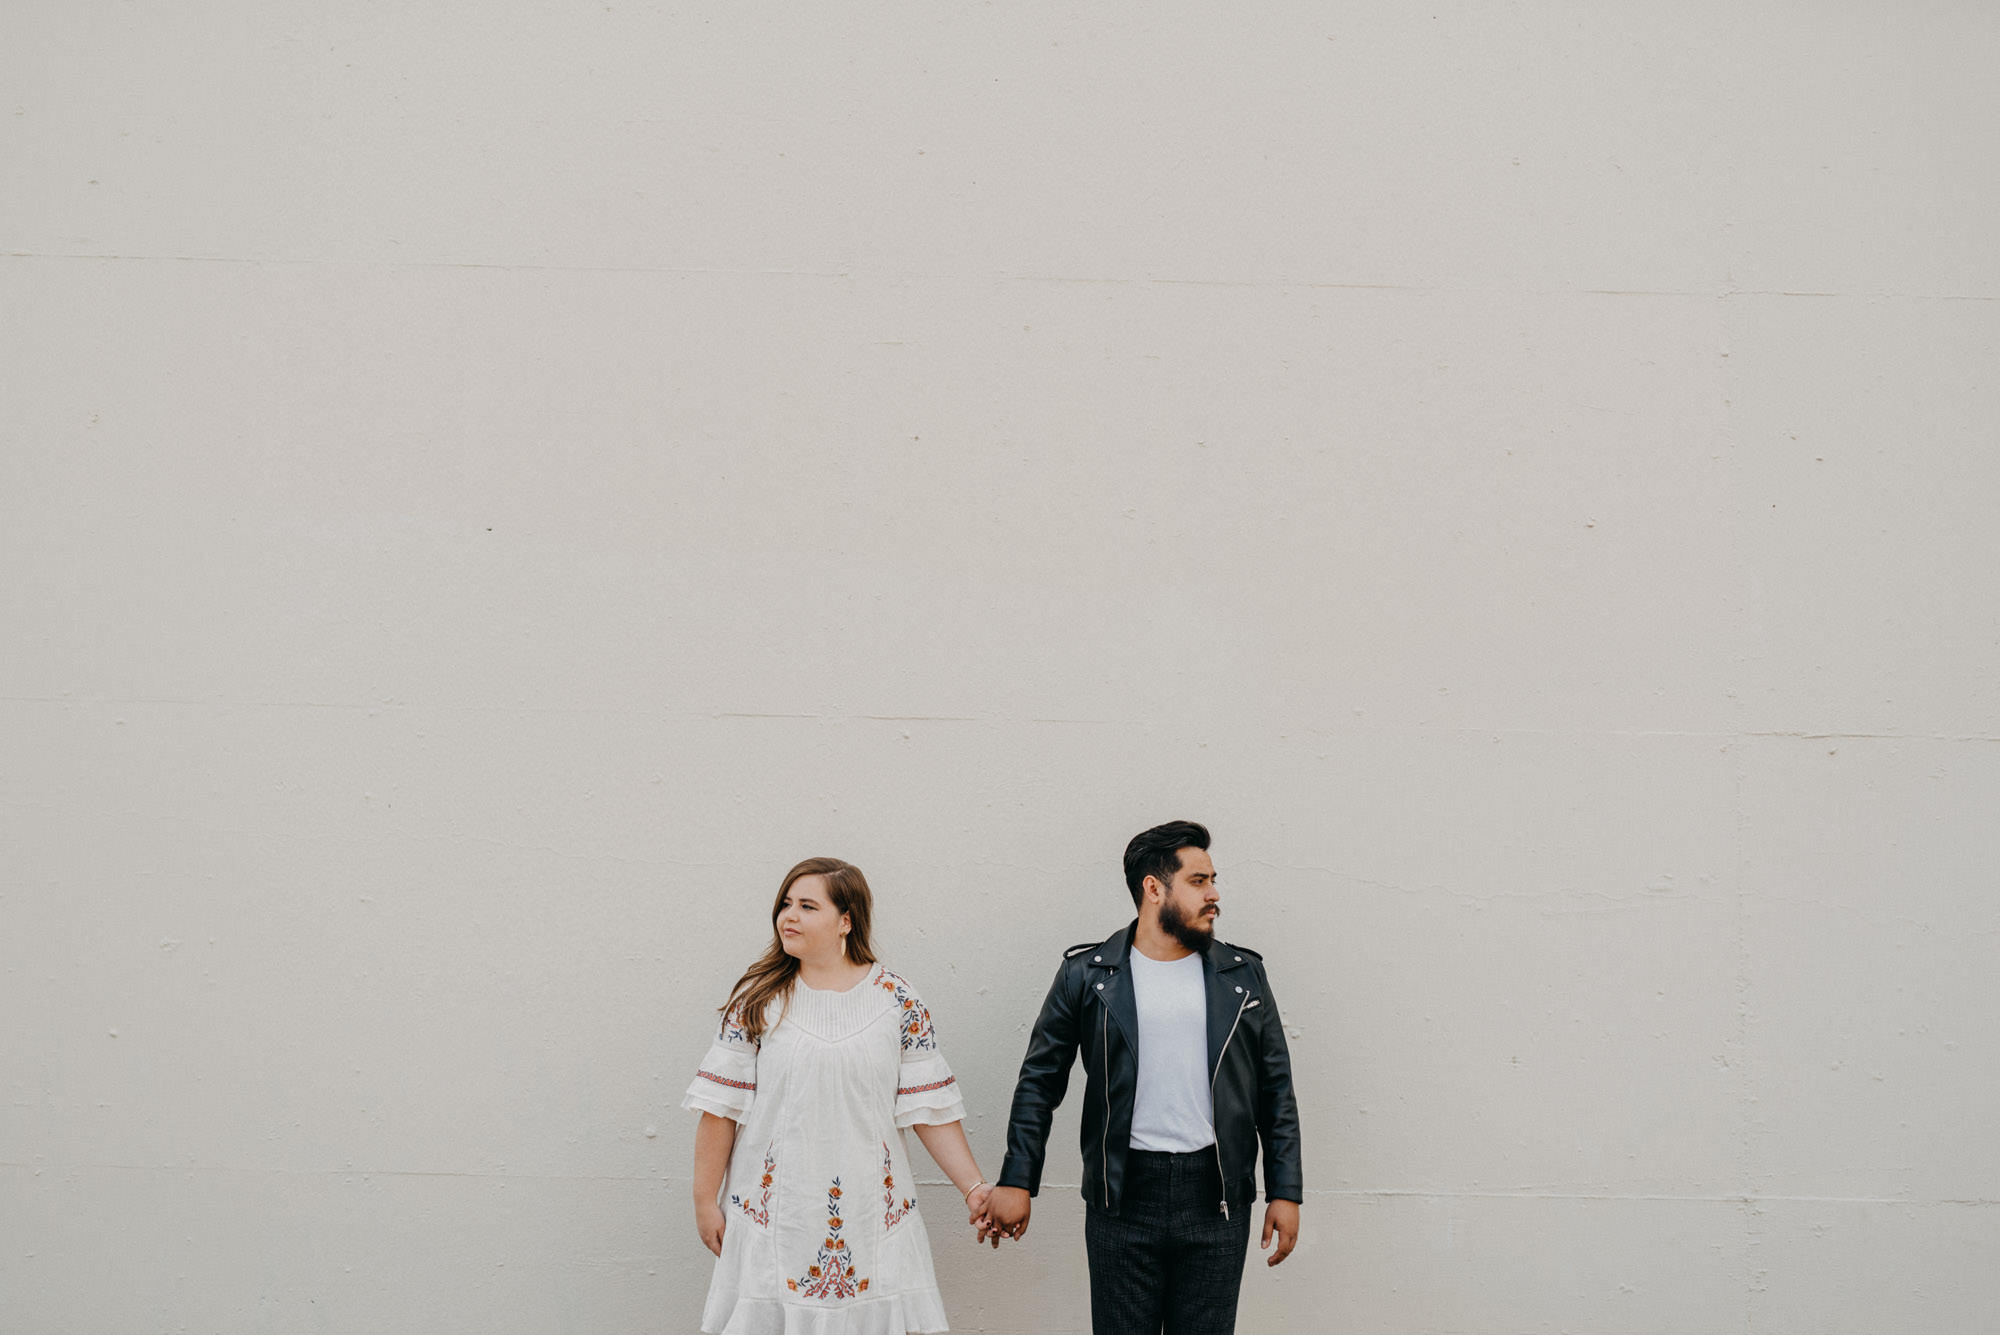 federico-portland-engagement-industrial-white-wall-4721.jpg